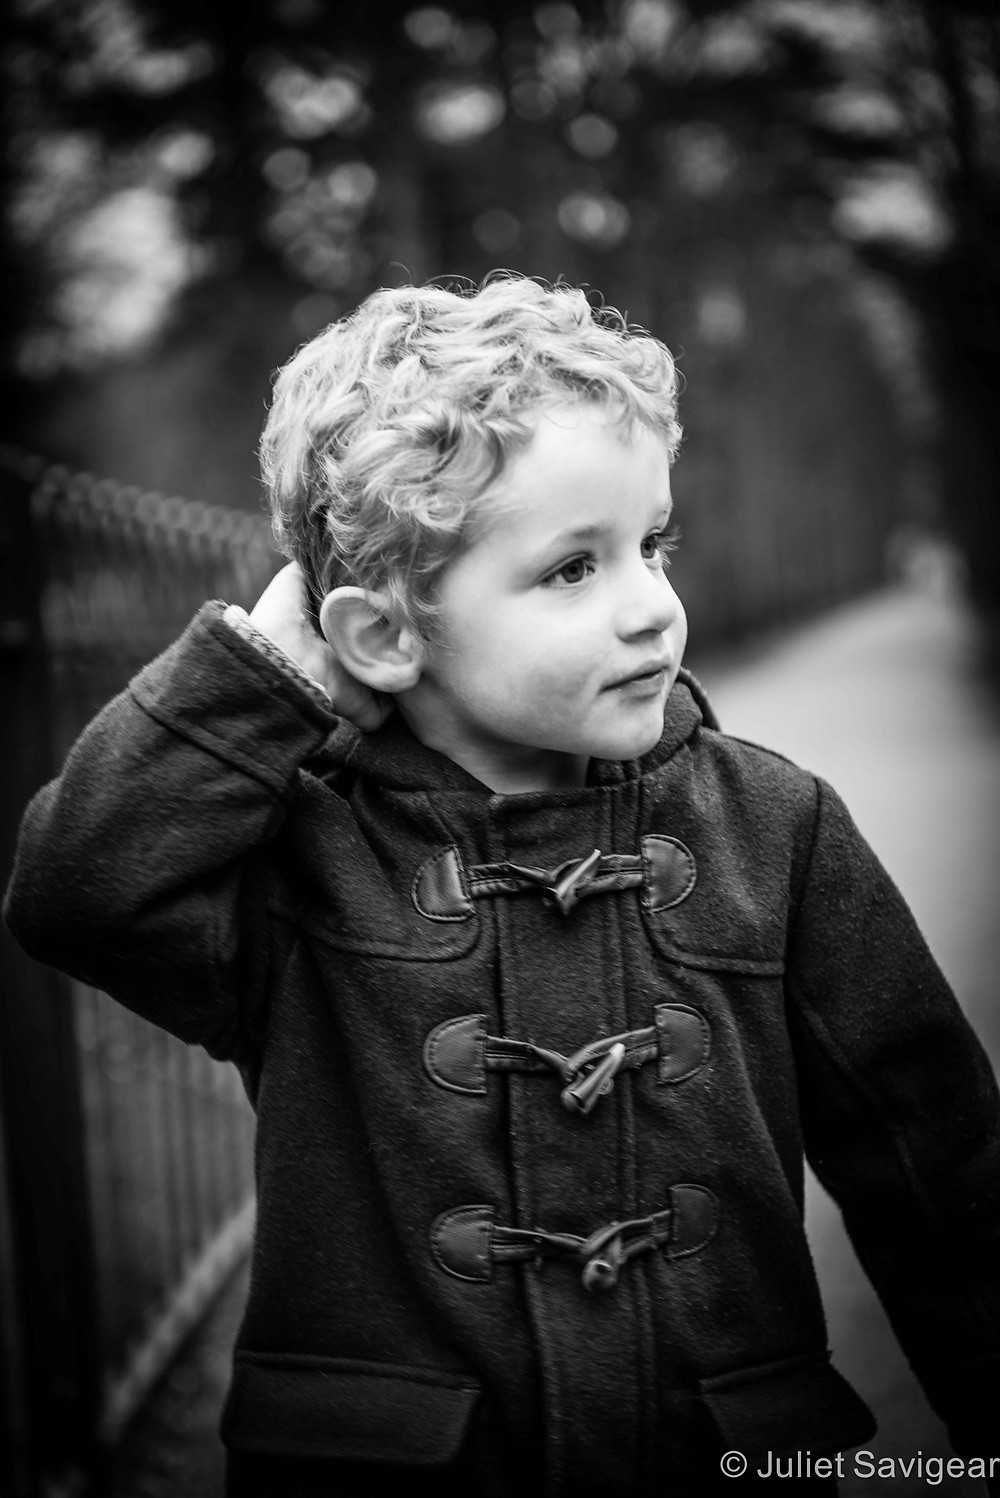 Looking Grown Up - Children's Photography, Chiswick